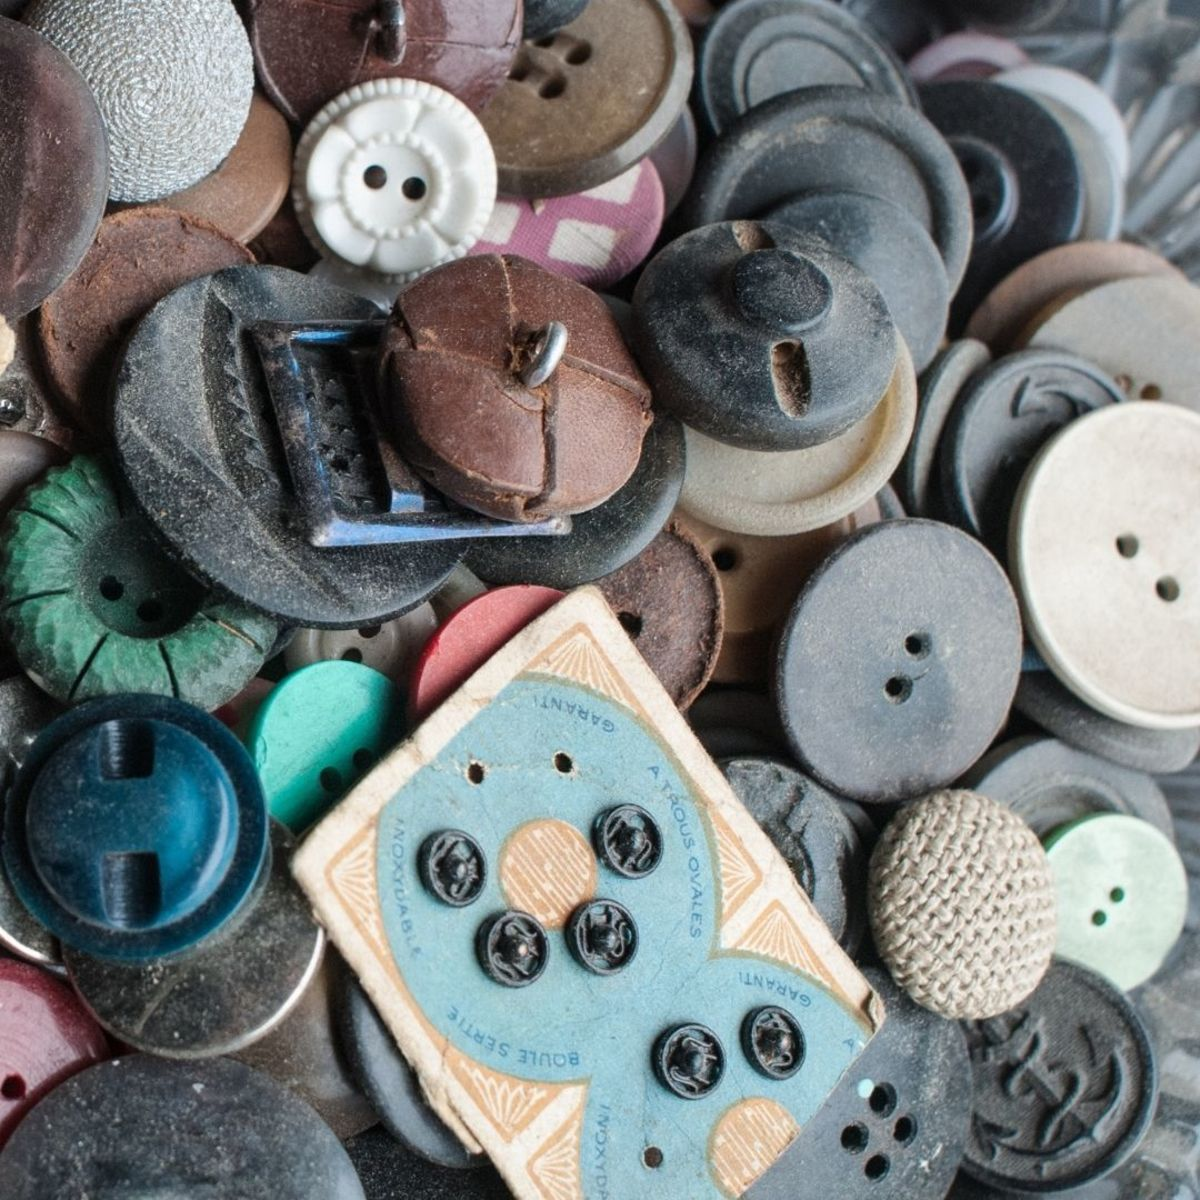 A vintage button's value depends on its size, material, condition, and age, among other factors.